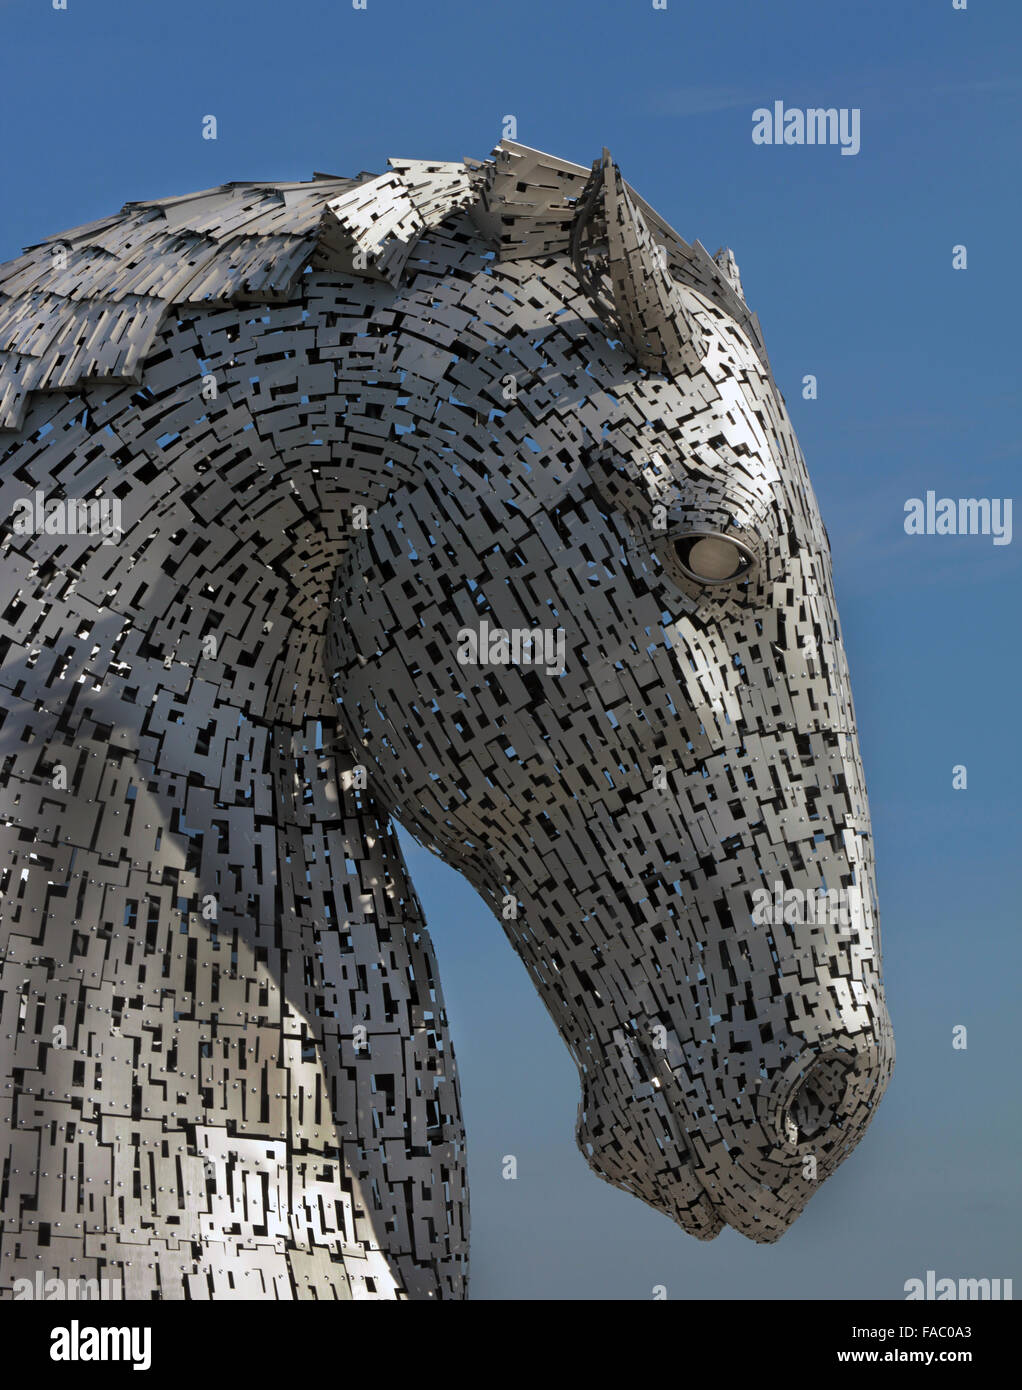 Detail of the head of one of the huge Kelpie horses at Falkirk, Scotland. It is the work of Andy Scott. Stock Photo